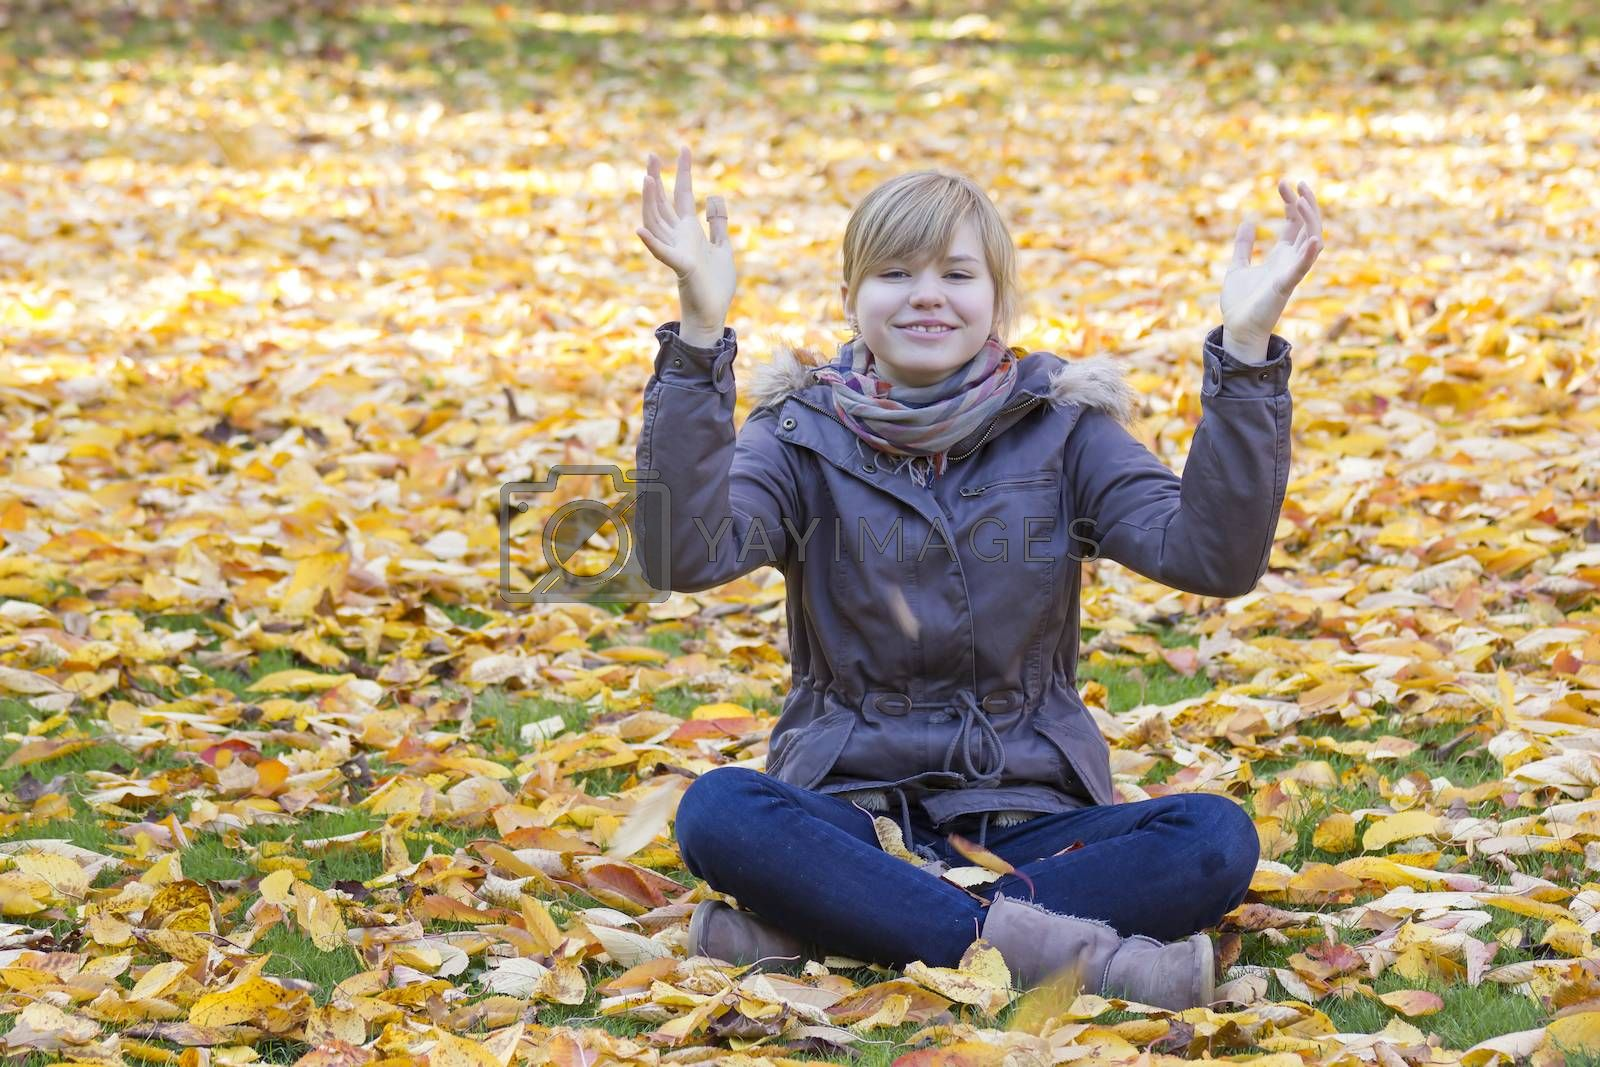 smiling girl sitting on fallen leaves in autumn park and rising up hands